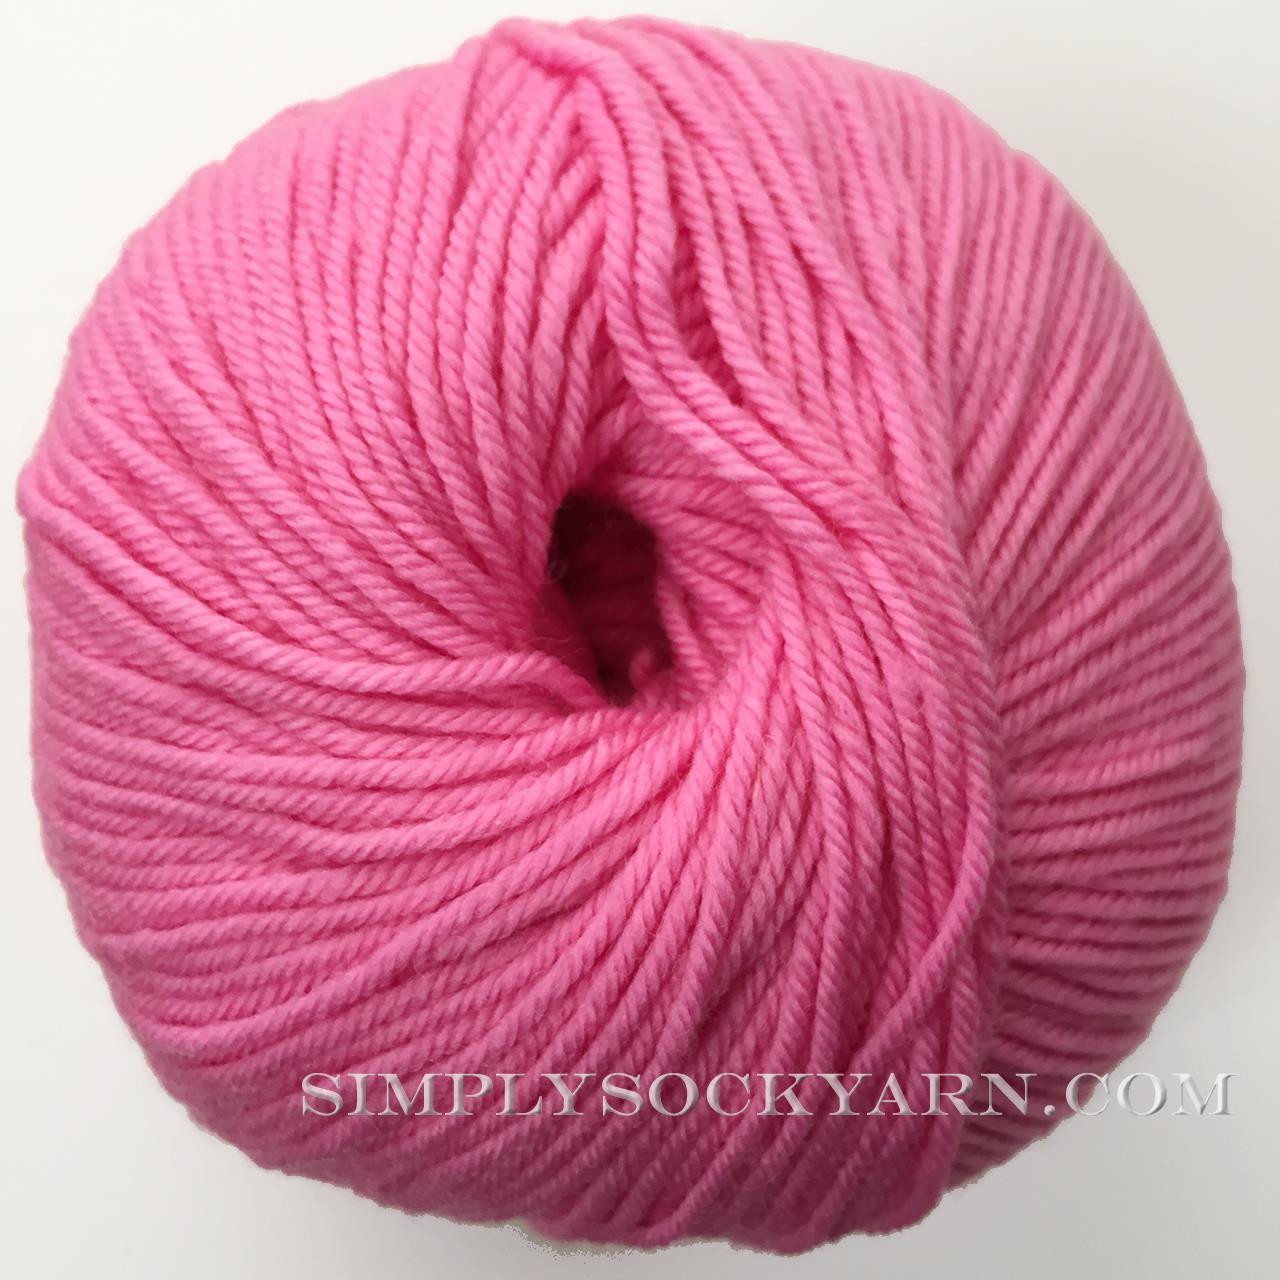 CY 220 SW 901 Cotton Candy -